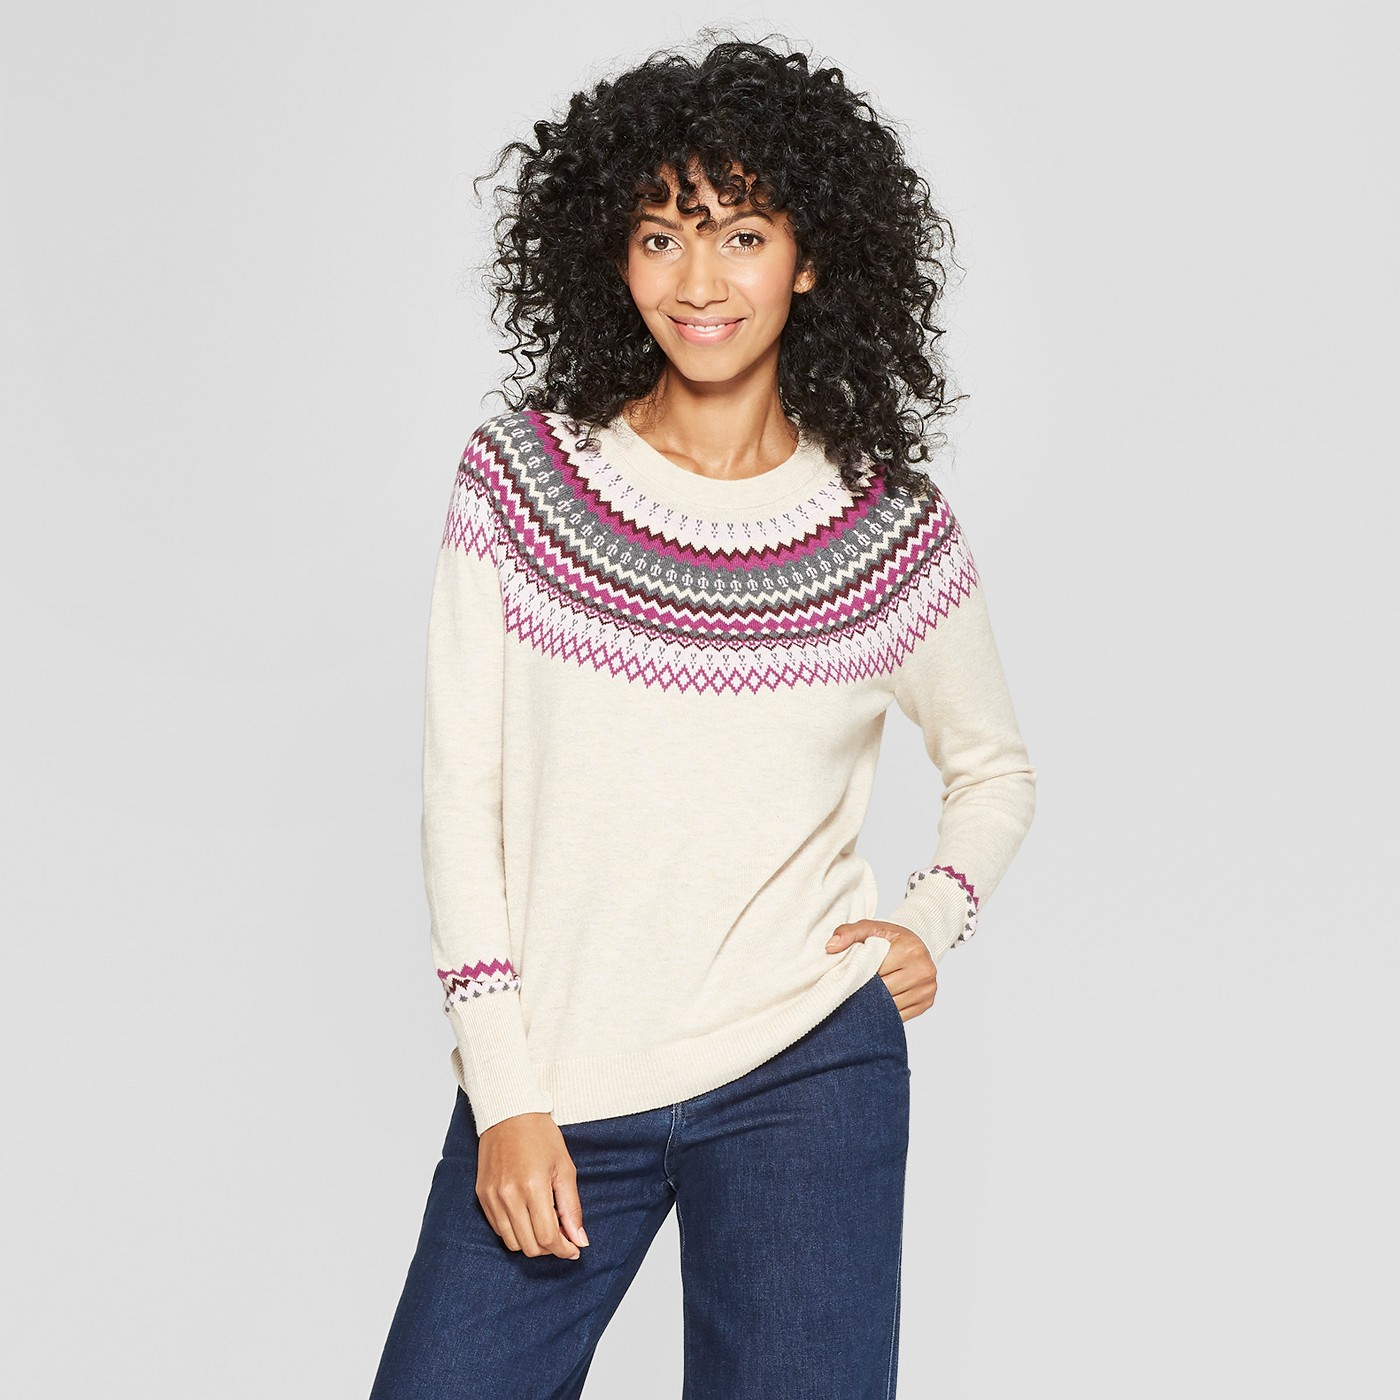 "Women's Fair Isle Pullover Sweater - A New Dayâ""¢ - image 1 of 3"